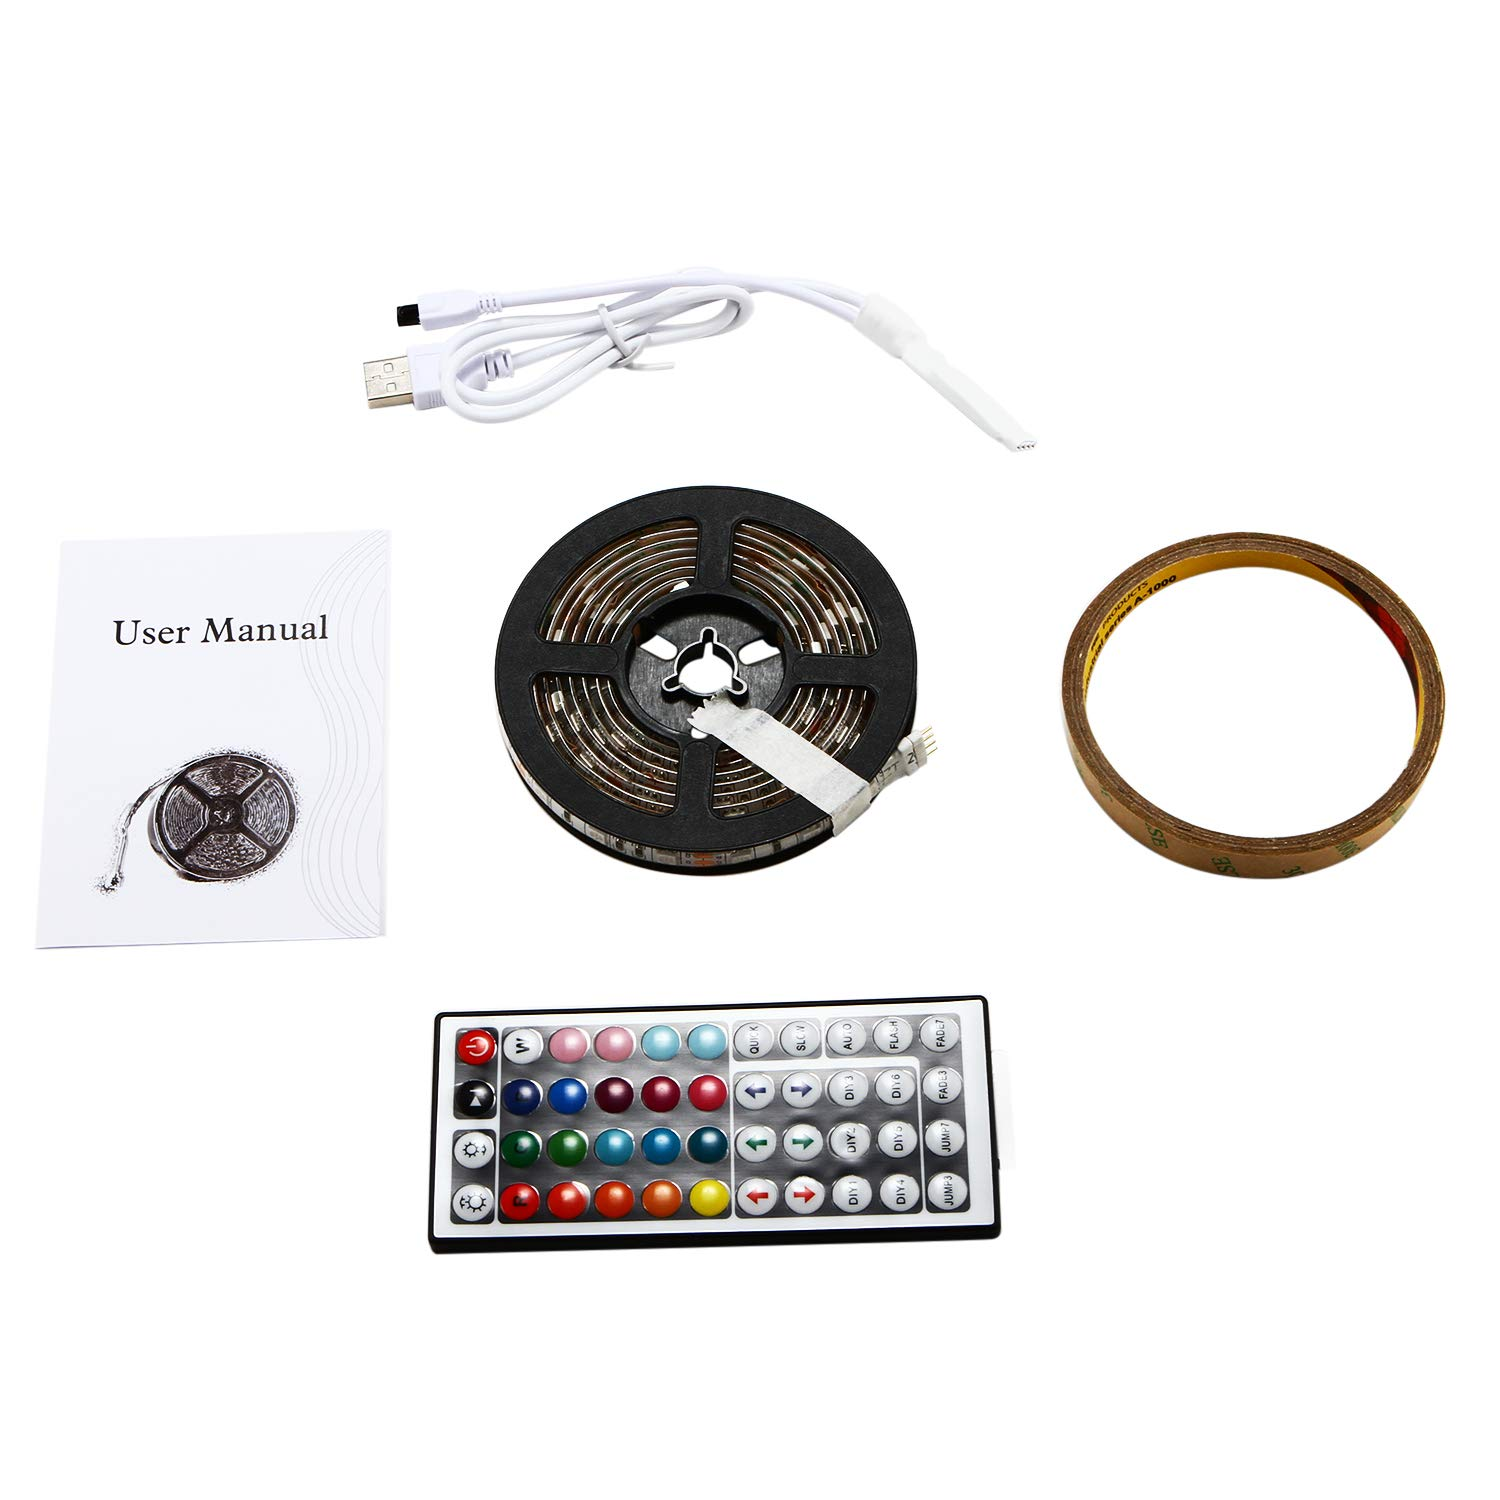 ZHT Bias Lighting for HDTV.USB LED Backlight Strip.Background Lighting.Led Light Strip DC5V SMD 5050 RGB with 44 Key Ir Controller Kitchen Bedroom and Sitting Room LED Strip Lights (Waterproof)